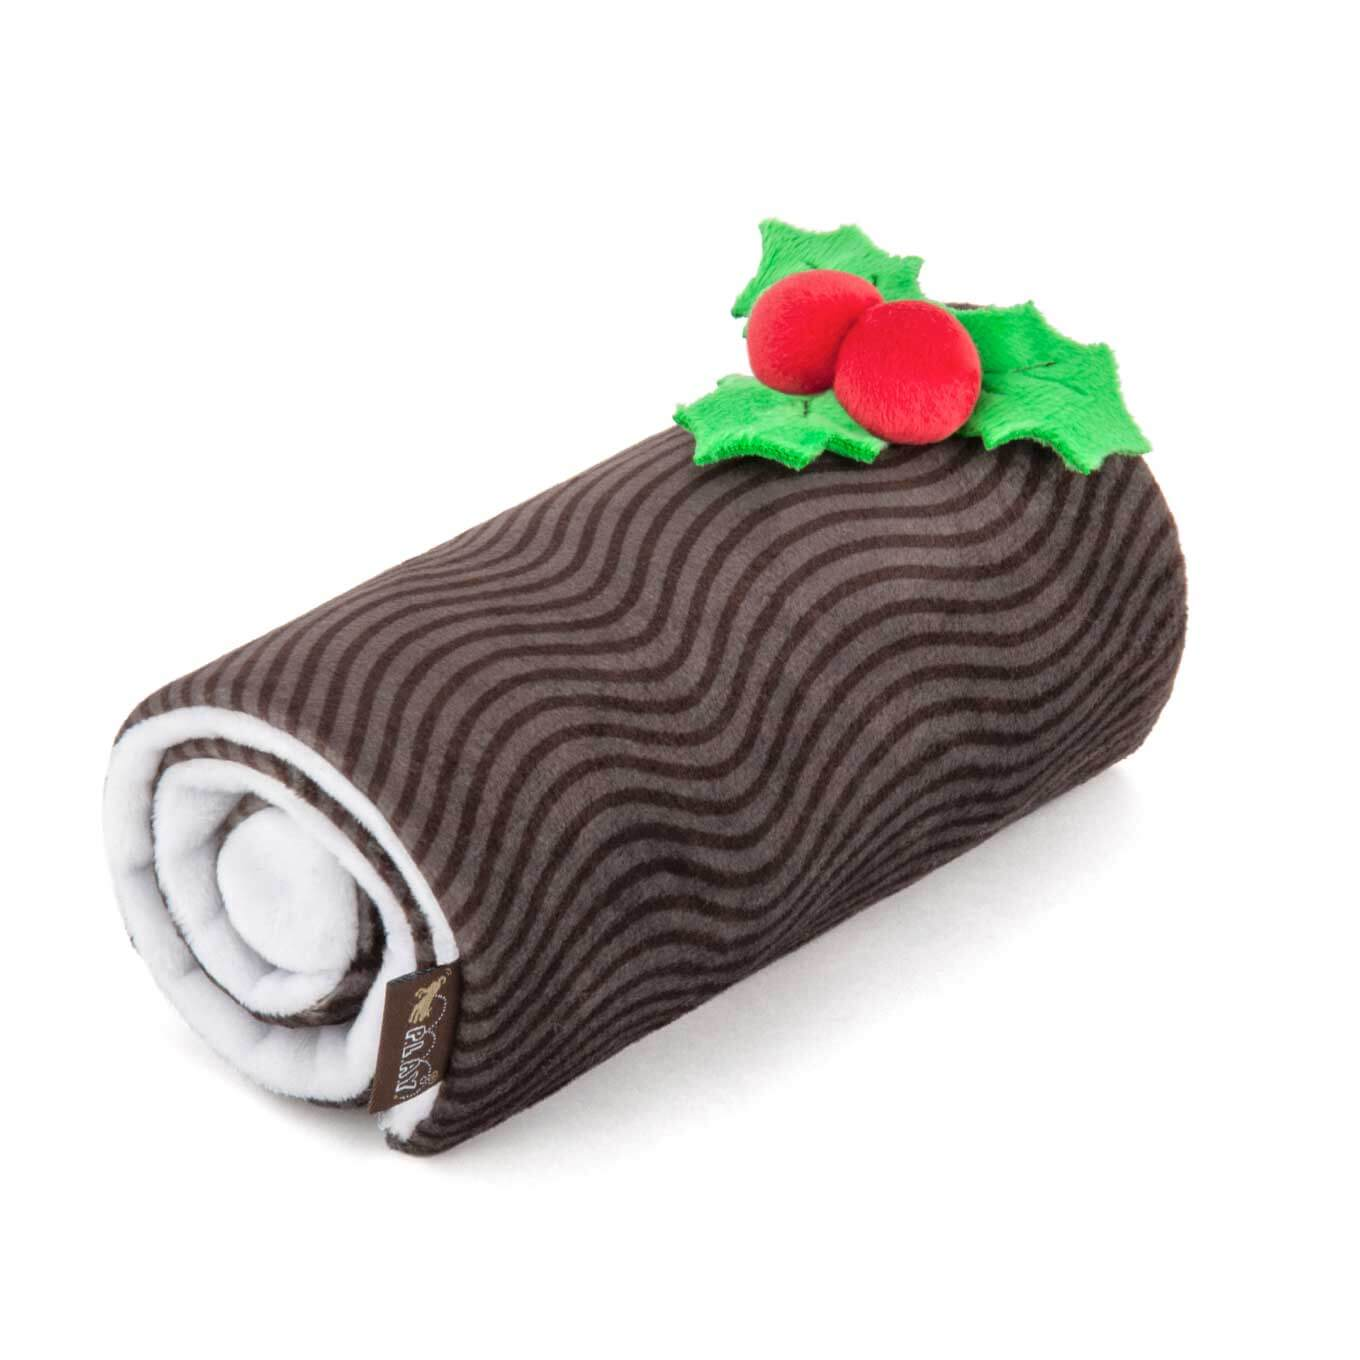 PLAY Holiday Classic Yuletide Log Plush Toy - Shop Vanillapup Online Pet Shop